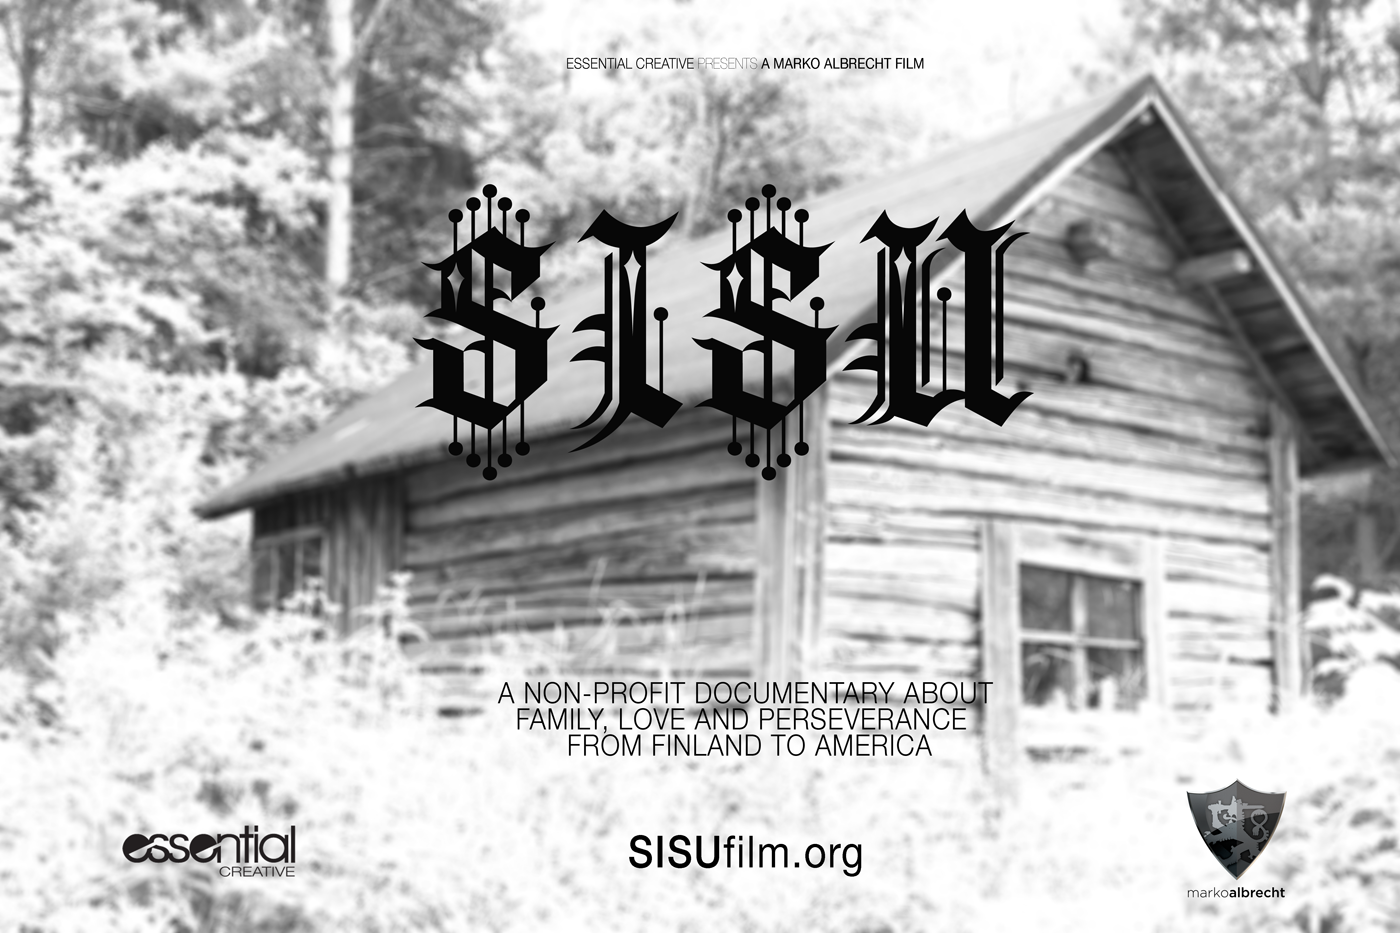 SISU: Family Love and Perseverance from Finland to America